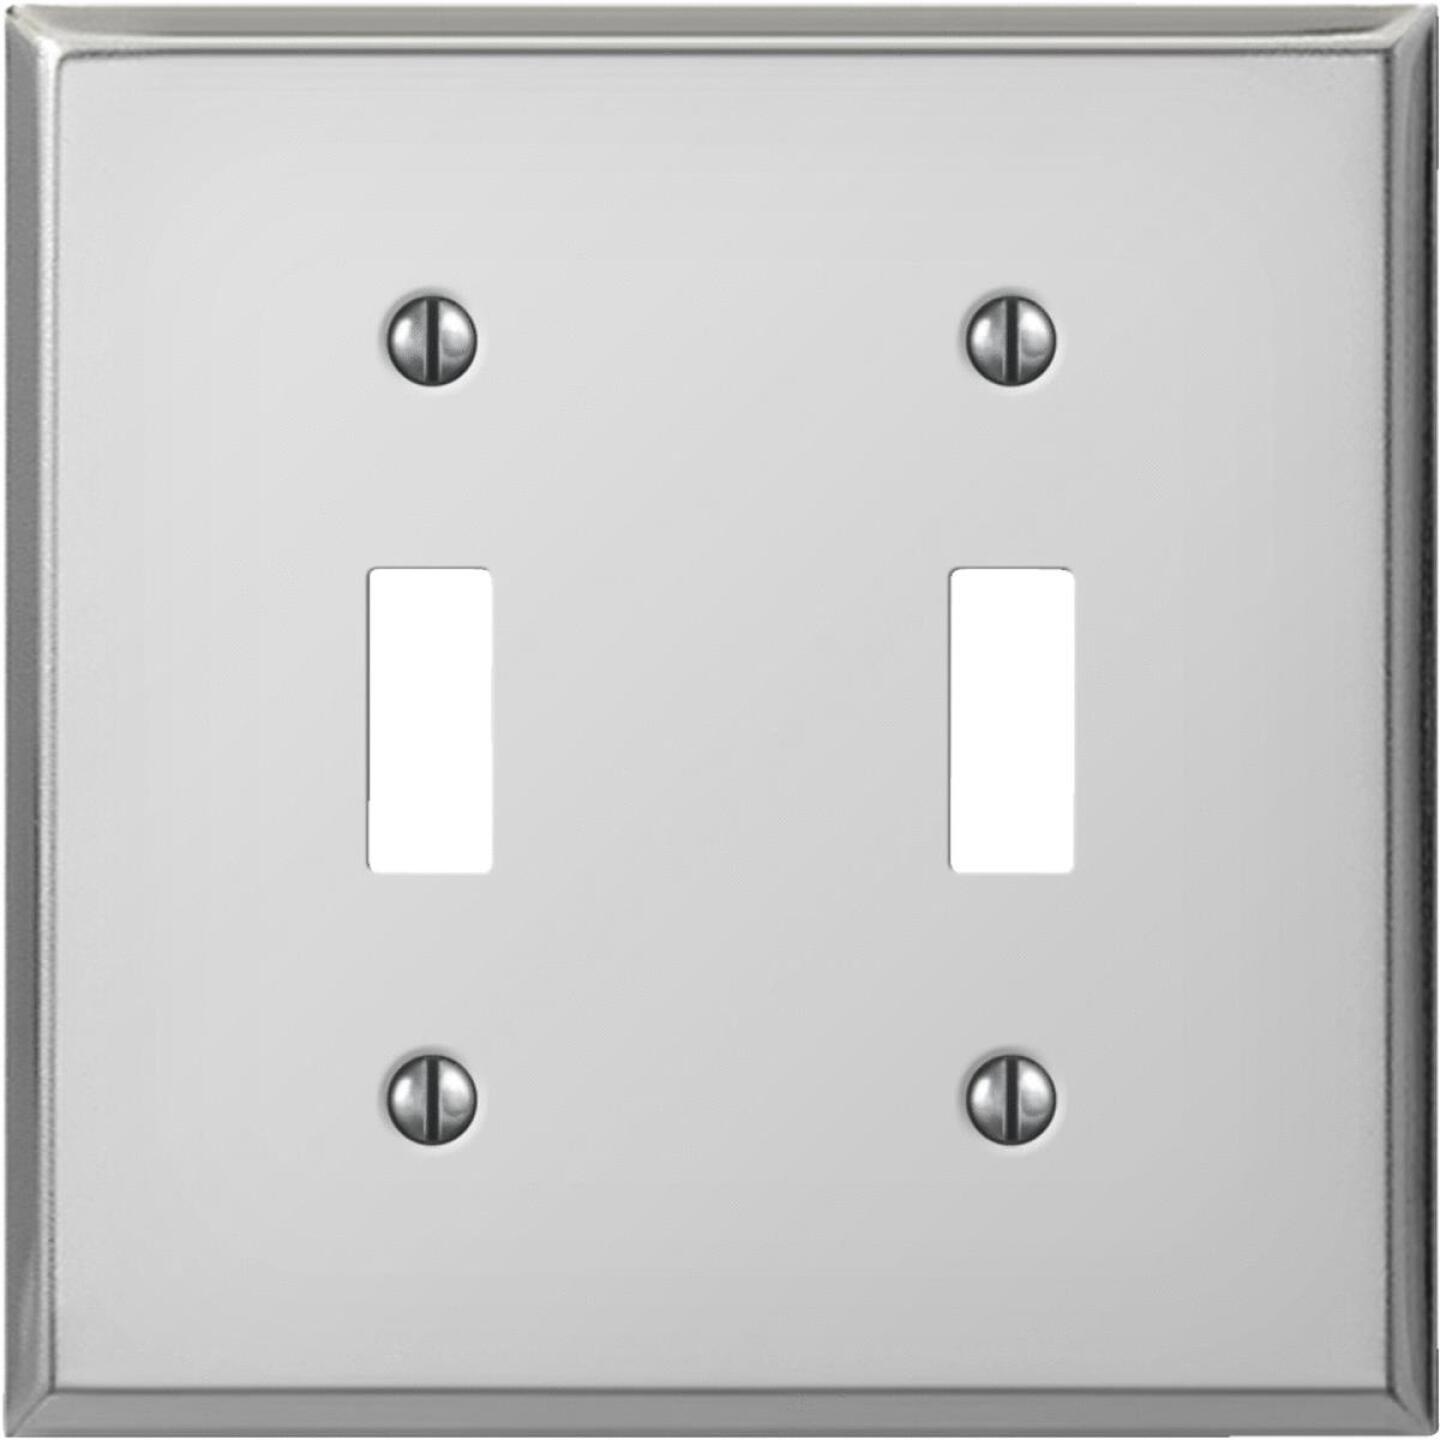 Amerelle PRO 2-Gang Stamped Steel Toggle Switch Wall Plate, Polished Chrome Image 1